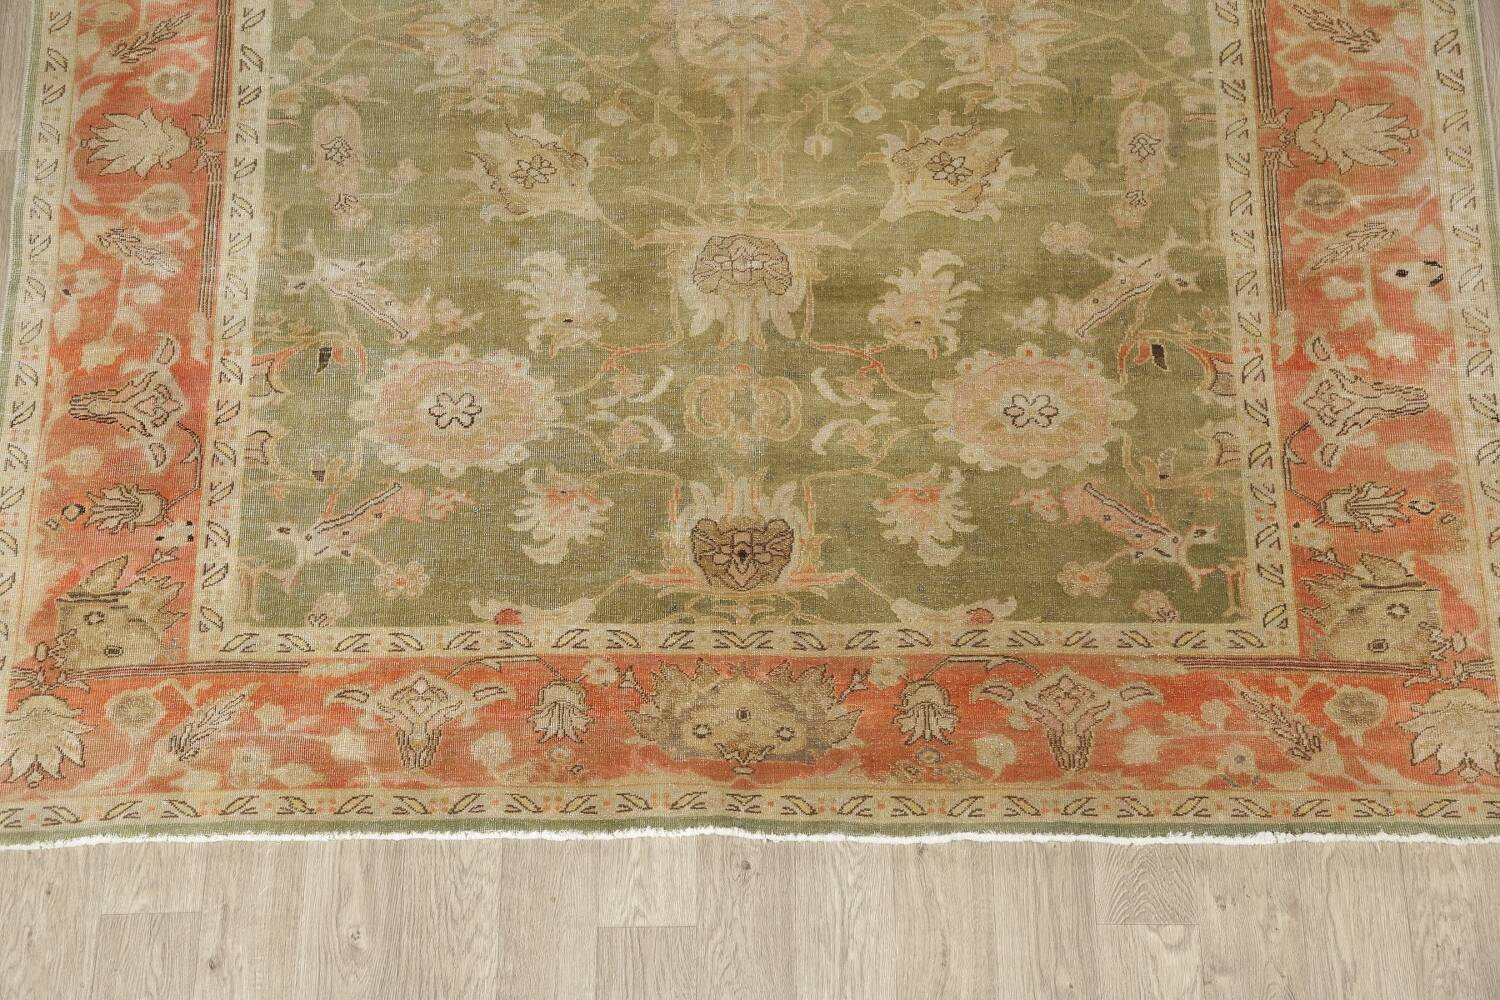 Antique Floral Oushak Green & Rust Oriental Area Rug 8x10 image 8